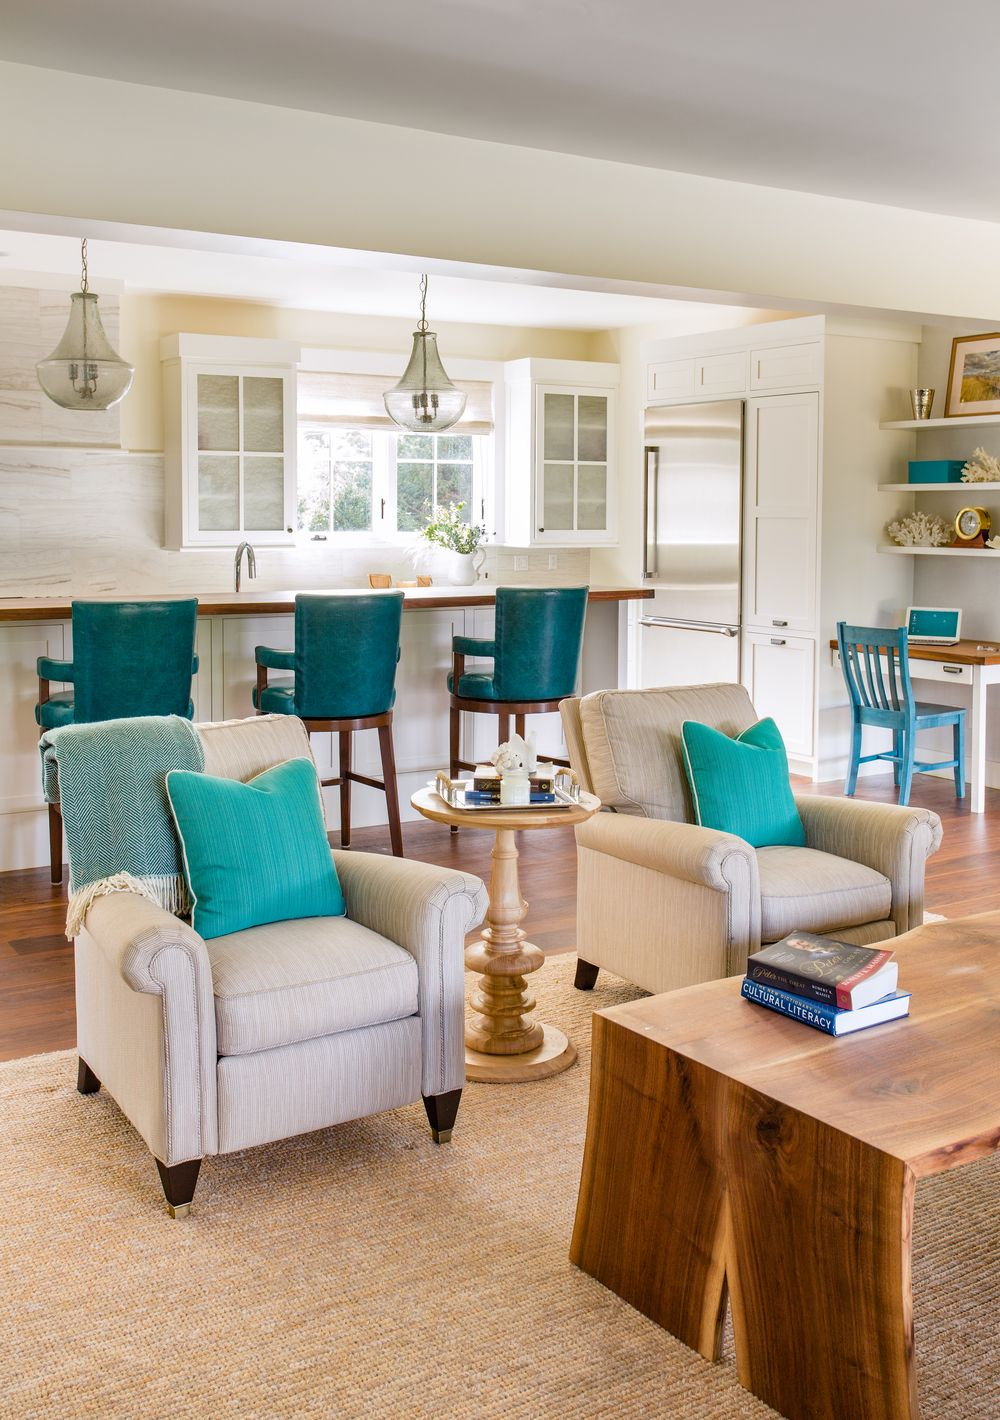 Marthas vineyard interior design living room turquoise house of turquoise turquoise accents turquoise home decor aqua